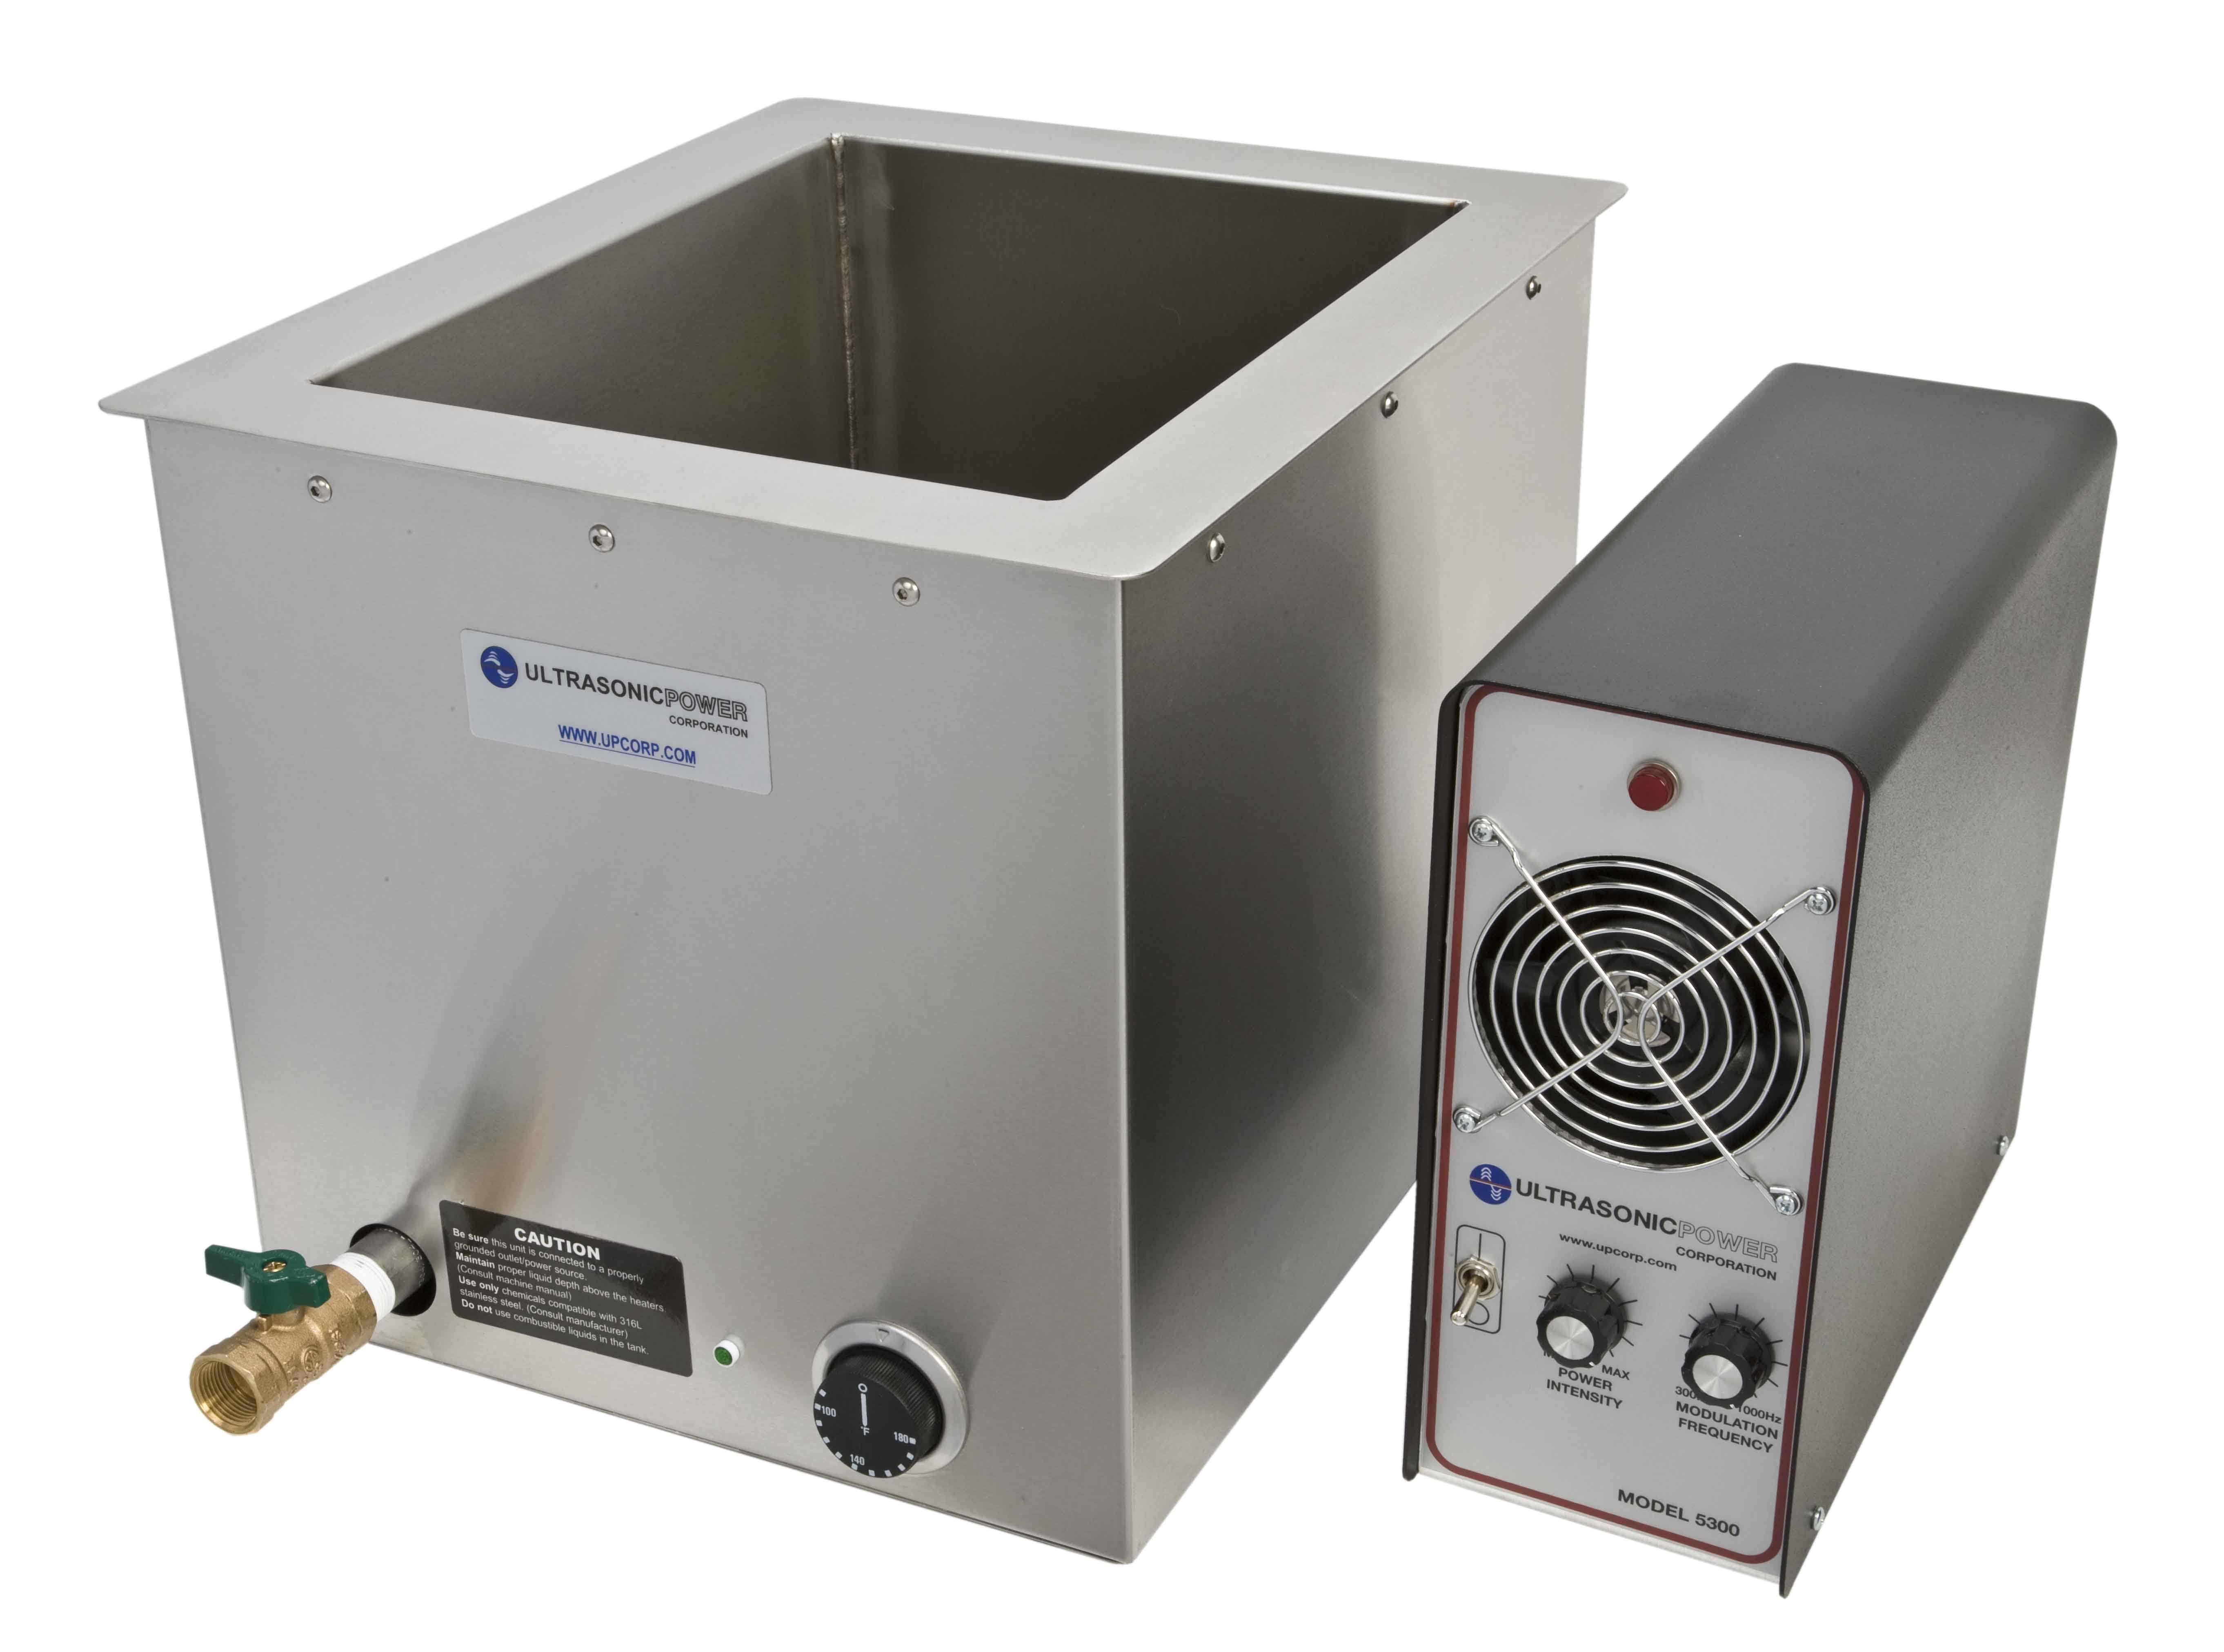 Ultrasonic Power Corp Introduces Expanded Line of Industrial